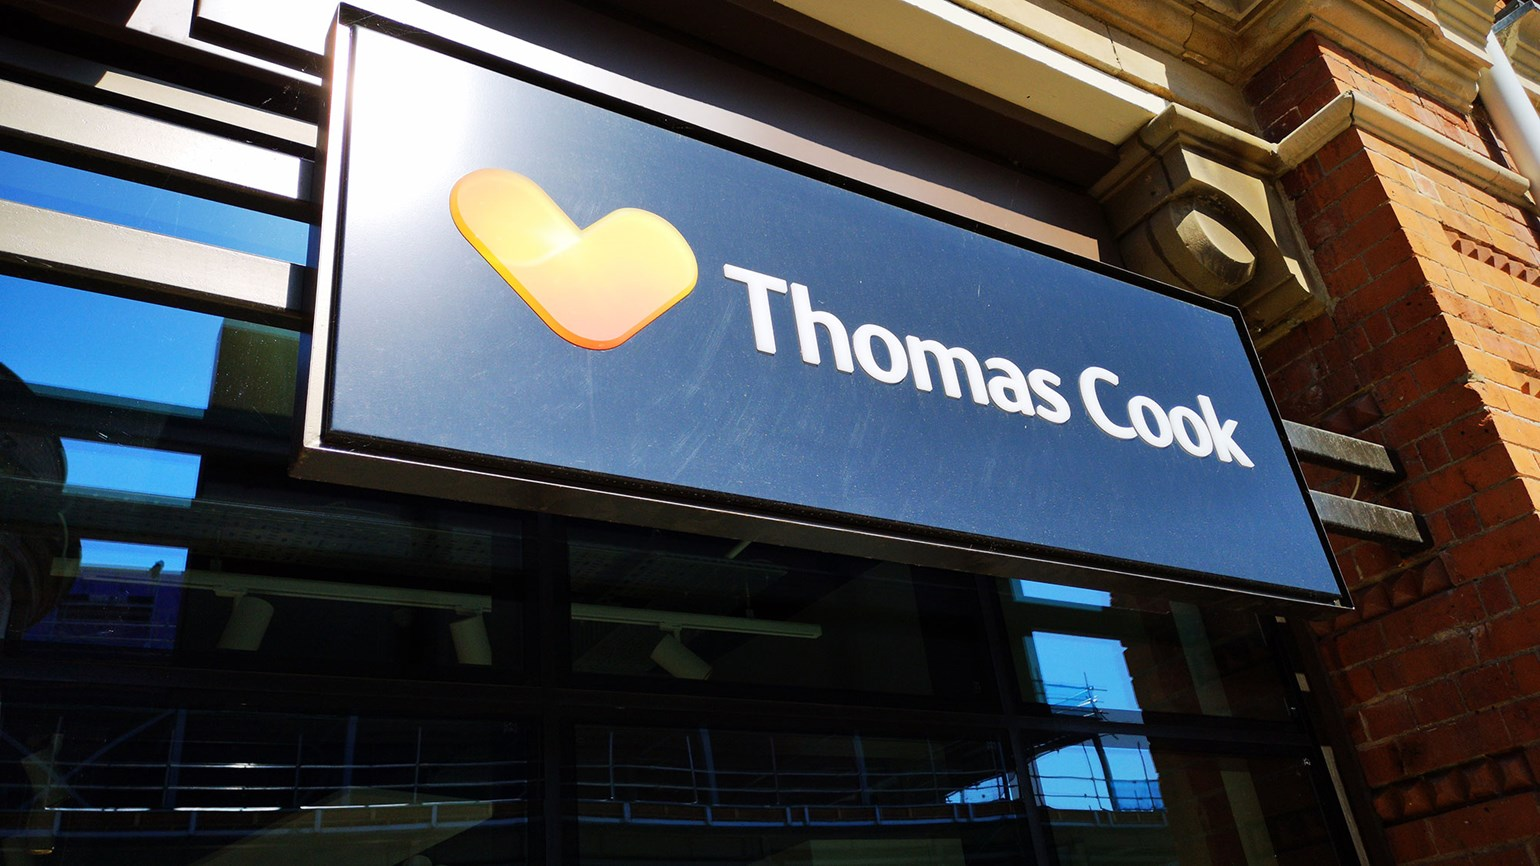 Thomas Cook seeks funding to keep company afloat